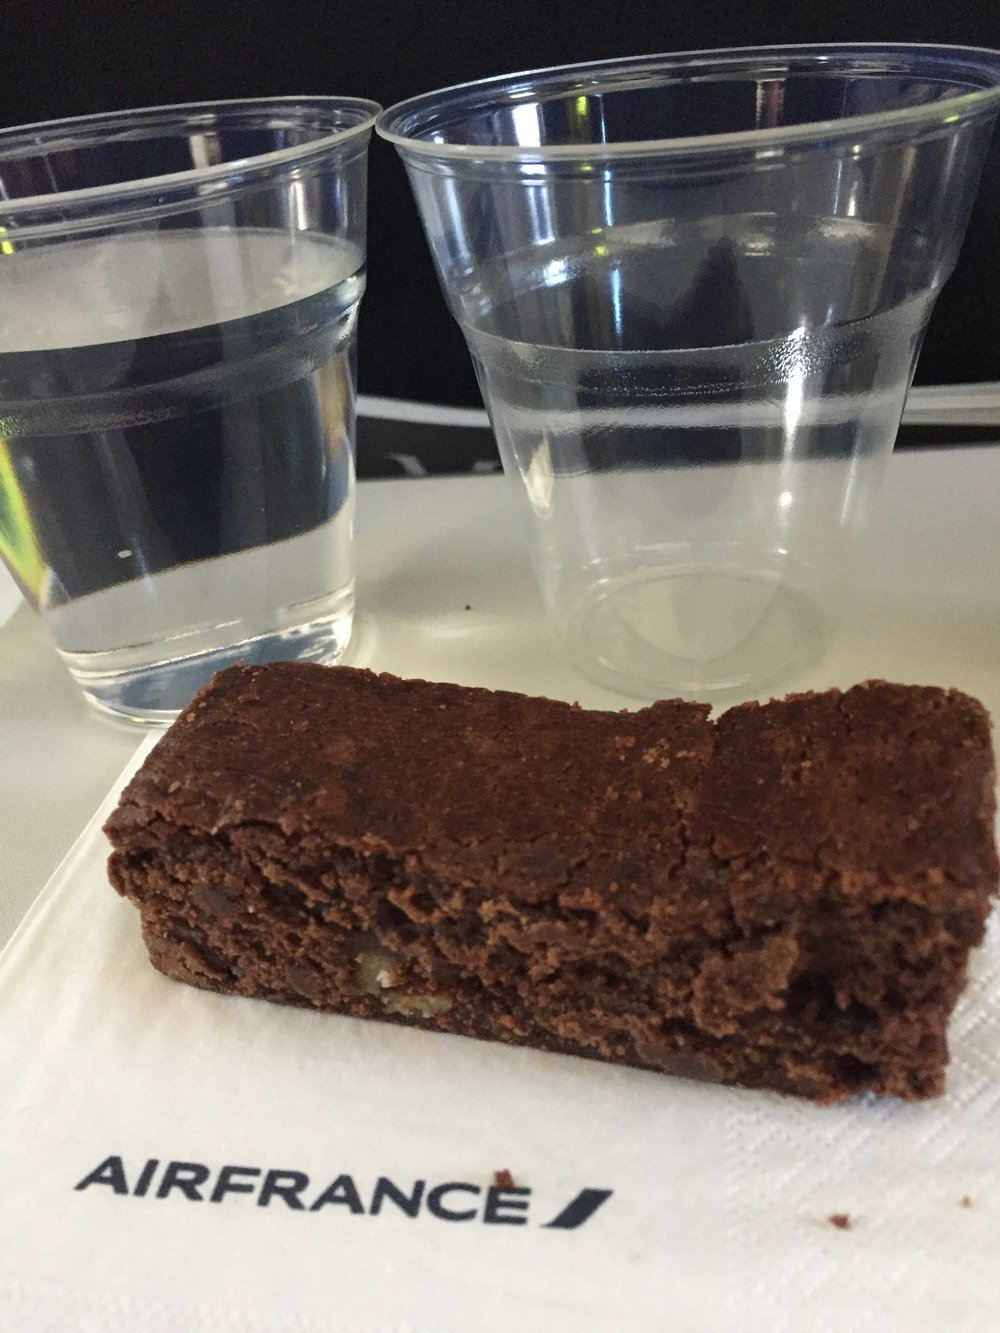 Best brownie I have ever eaten on a plane!